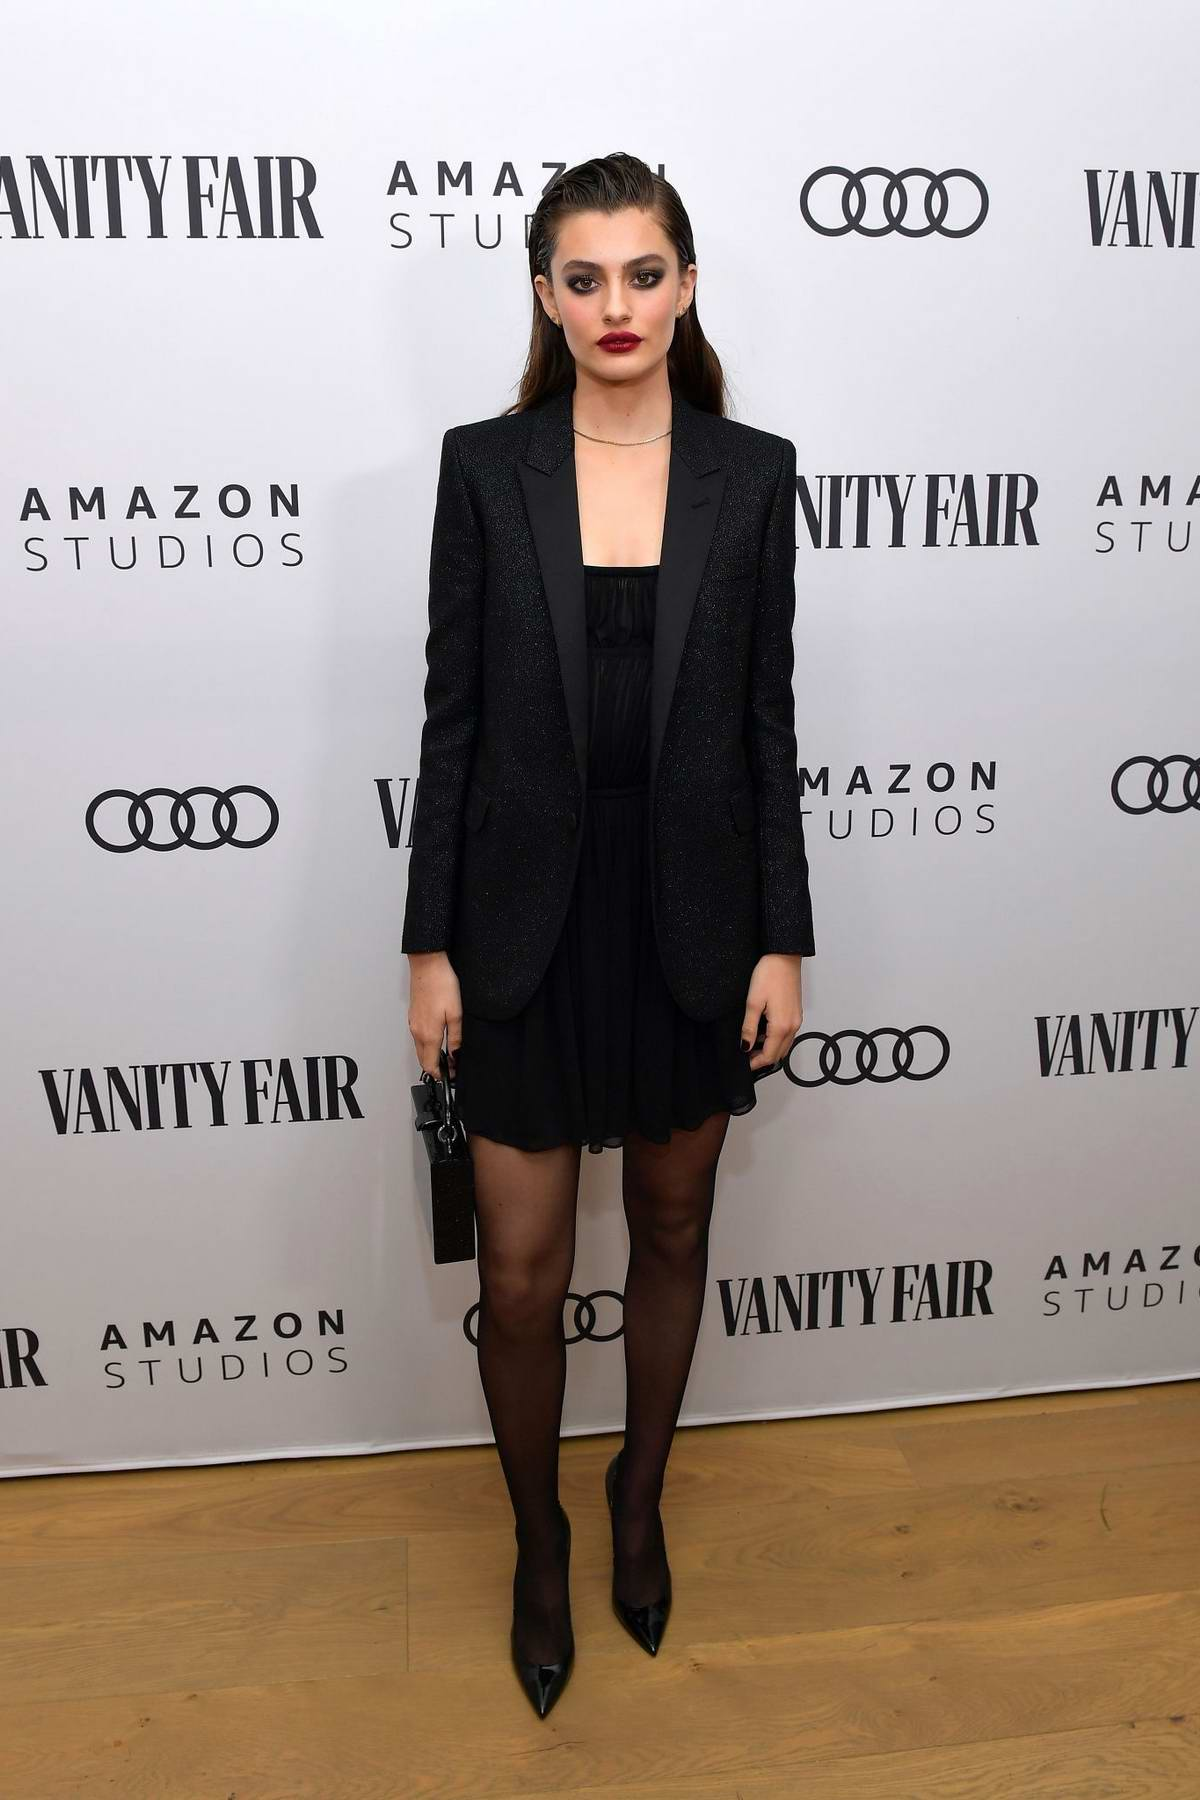 Diana Silvers attends The Vanity Fair x Amazon Studios 2020 Awards Season Celebration in West Hollywood, California